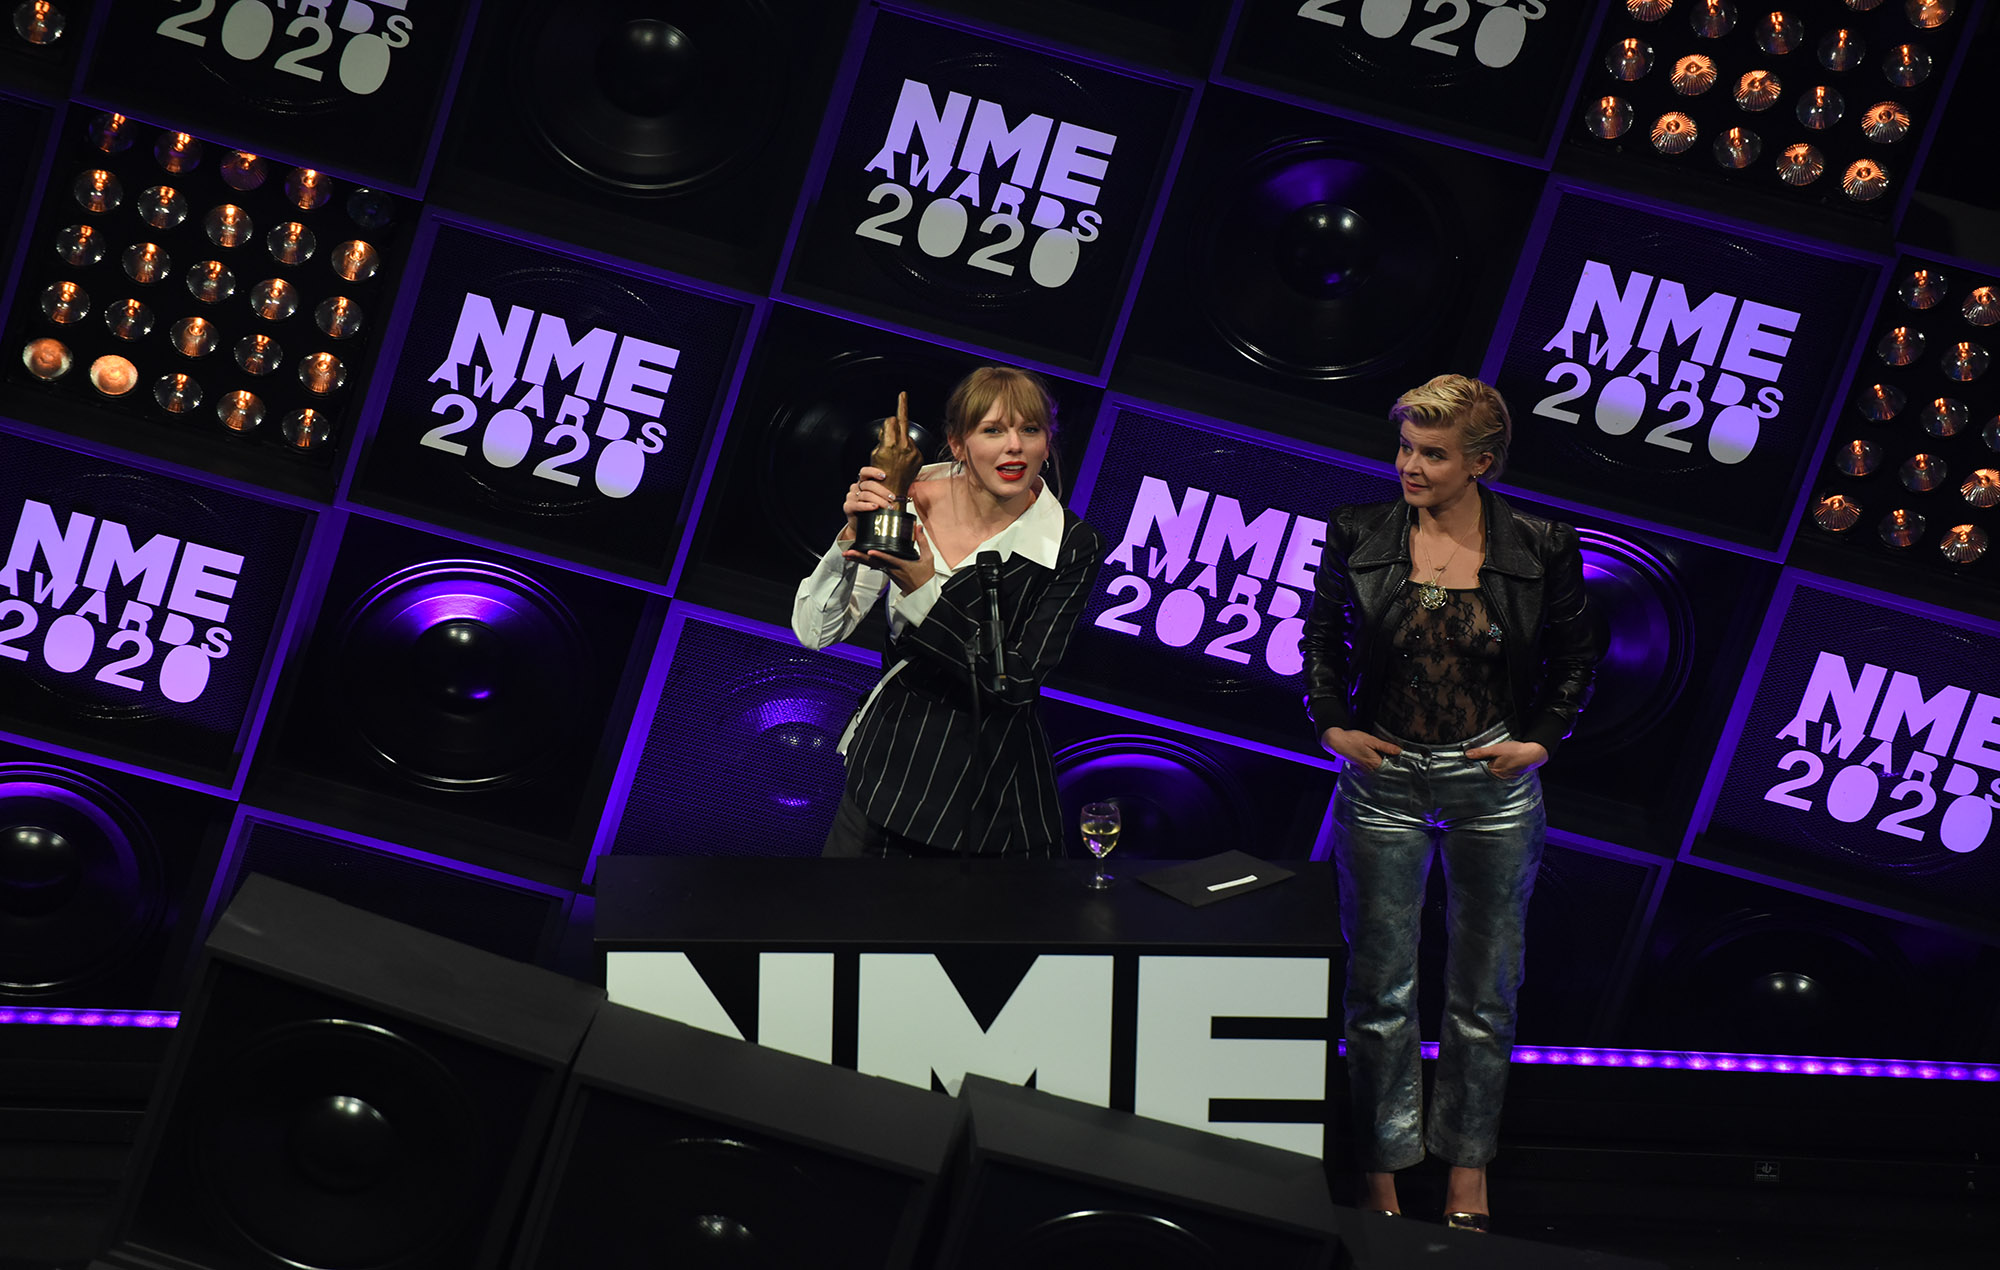 Taylor Swift at the NME Awards 2020